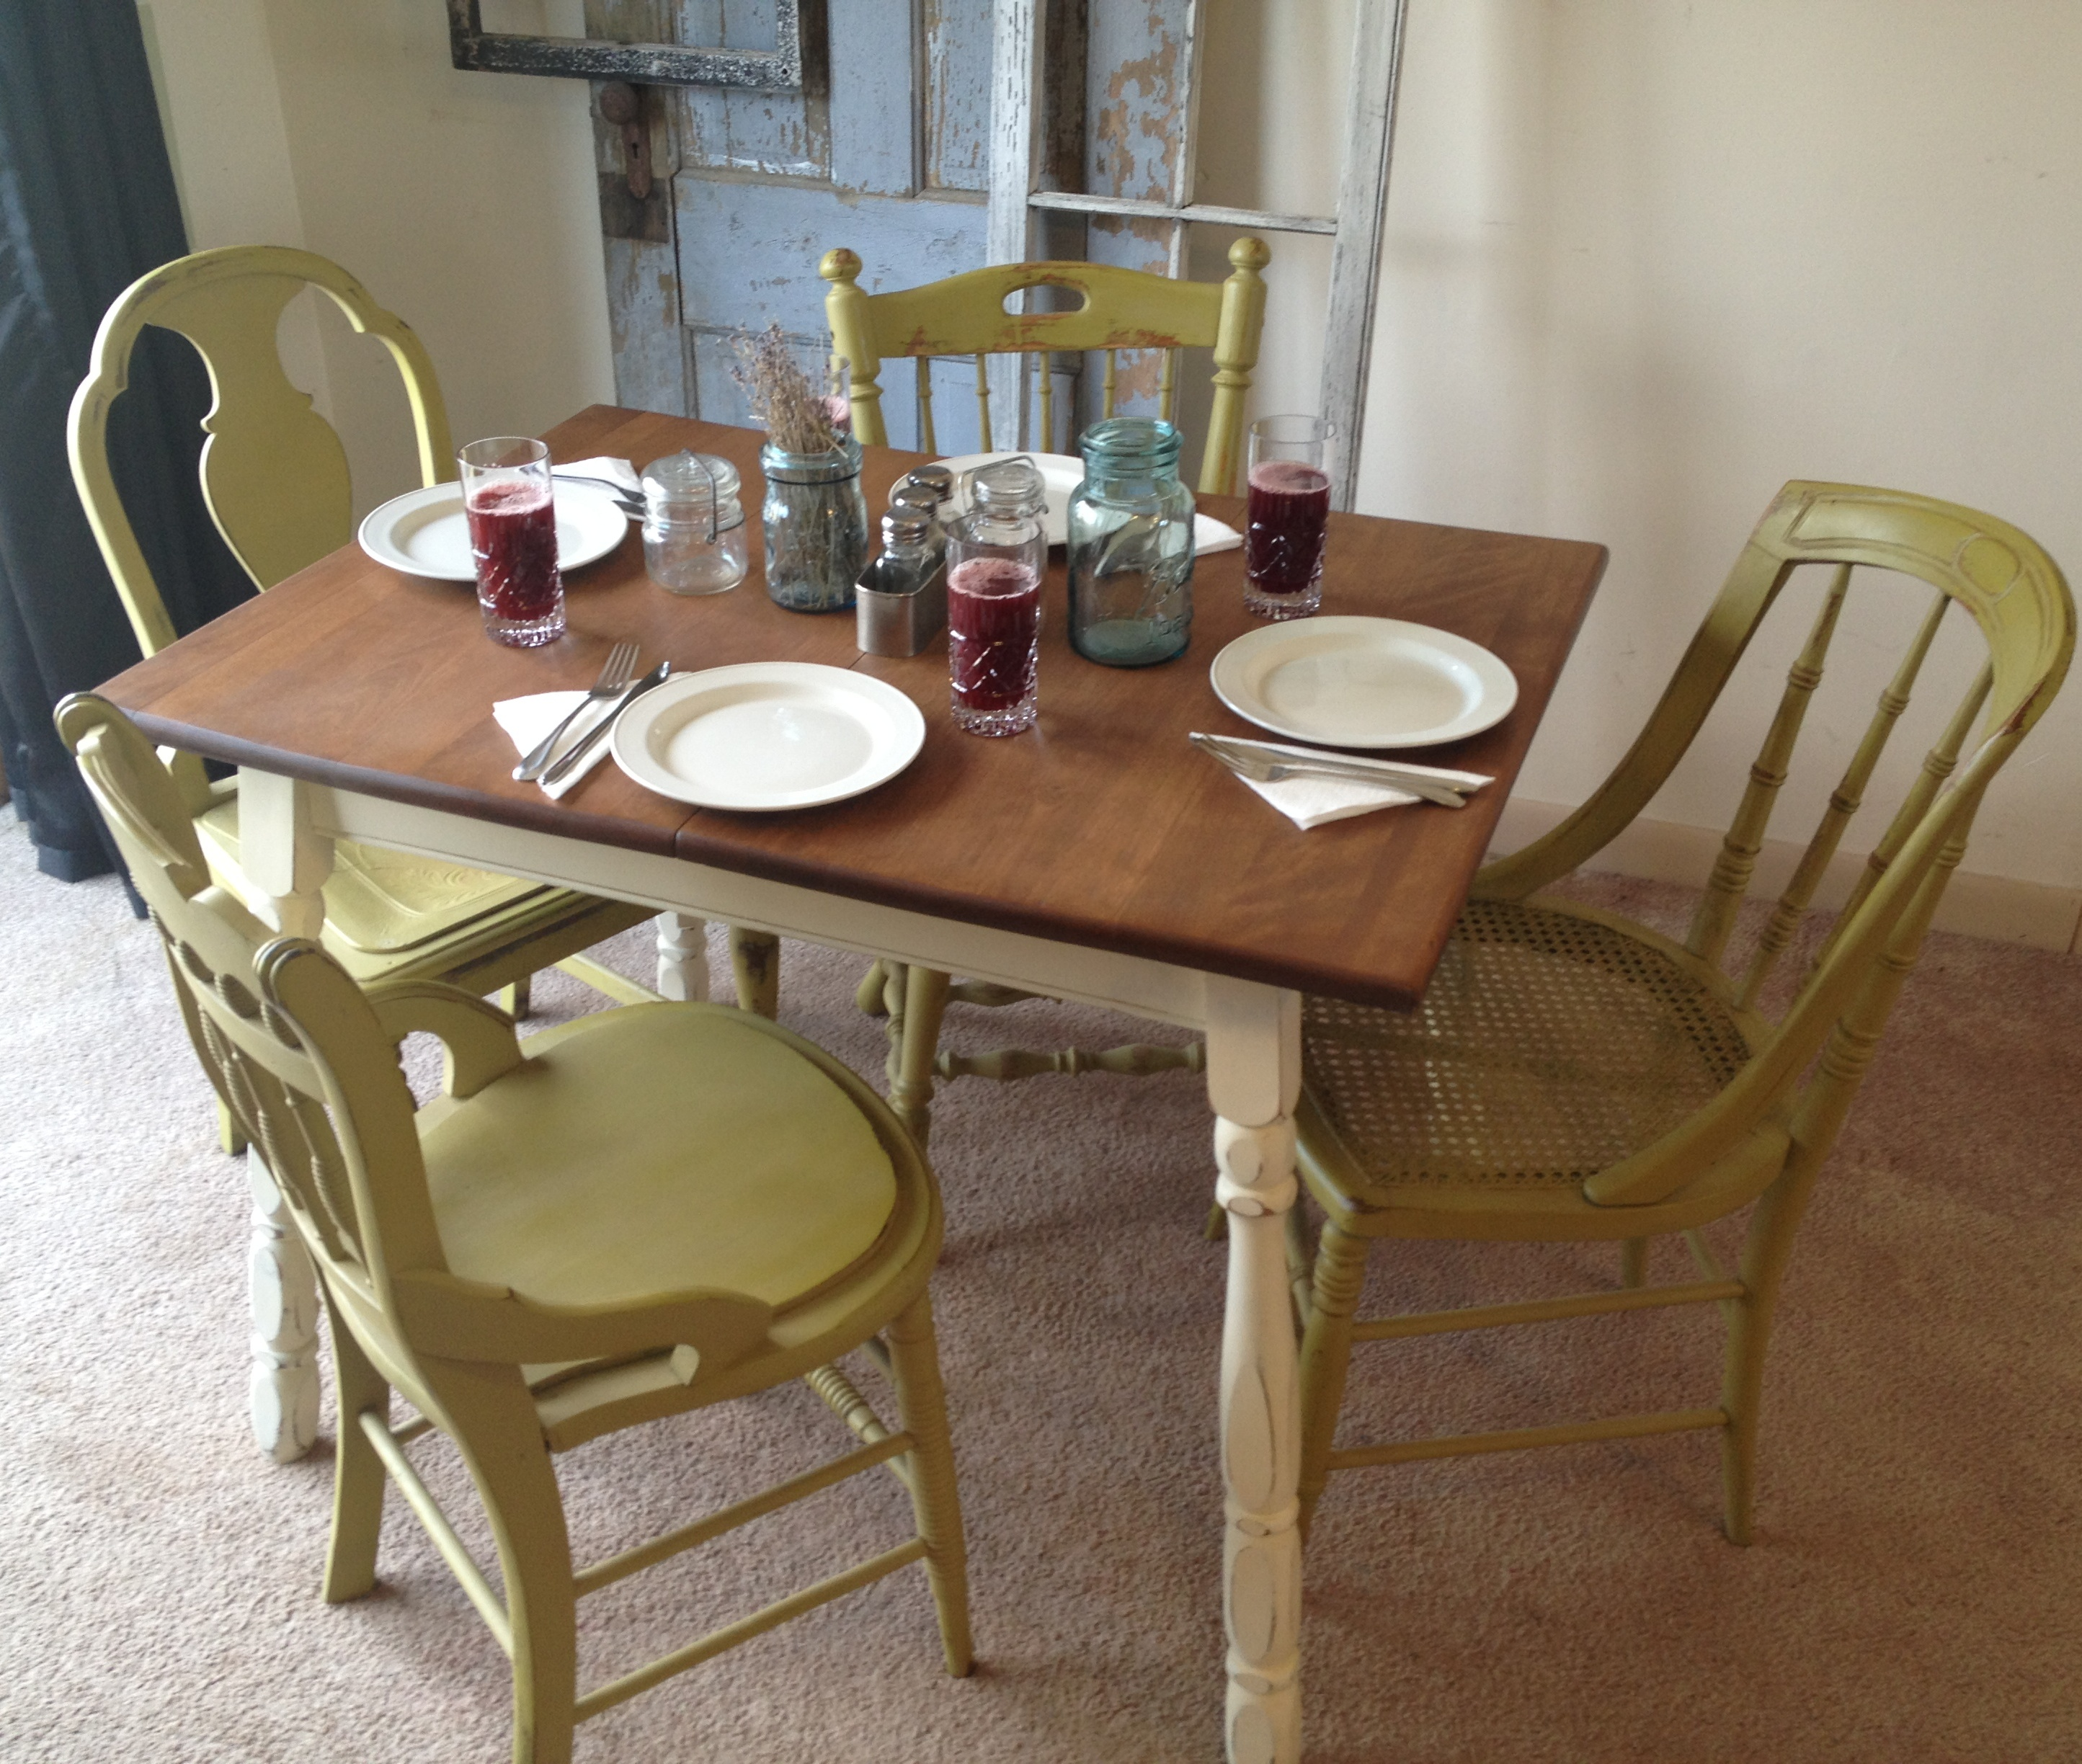 Country kitchen chairs Photo - 10